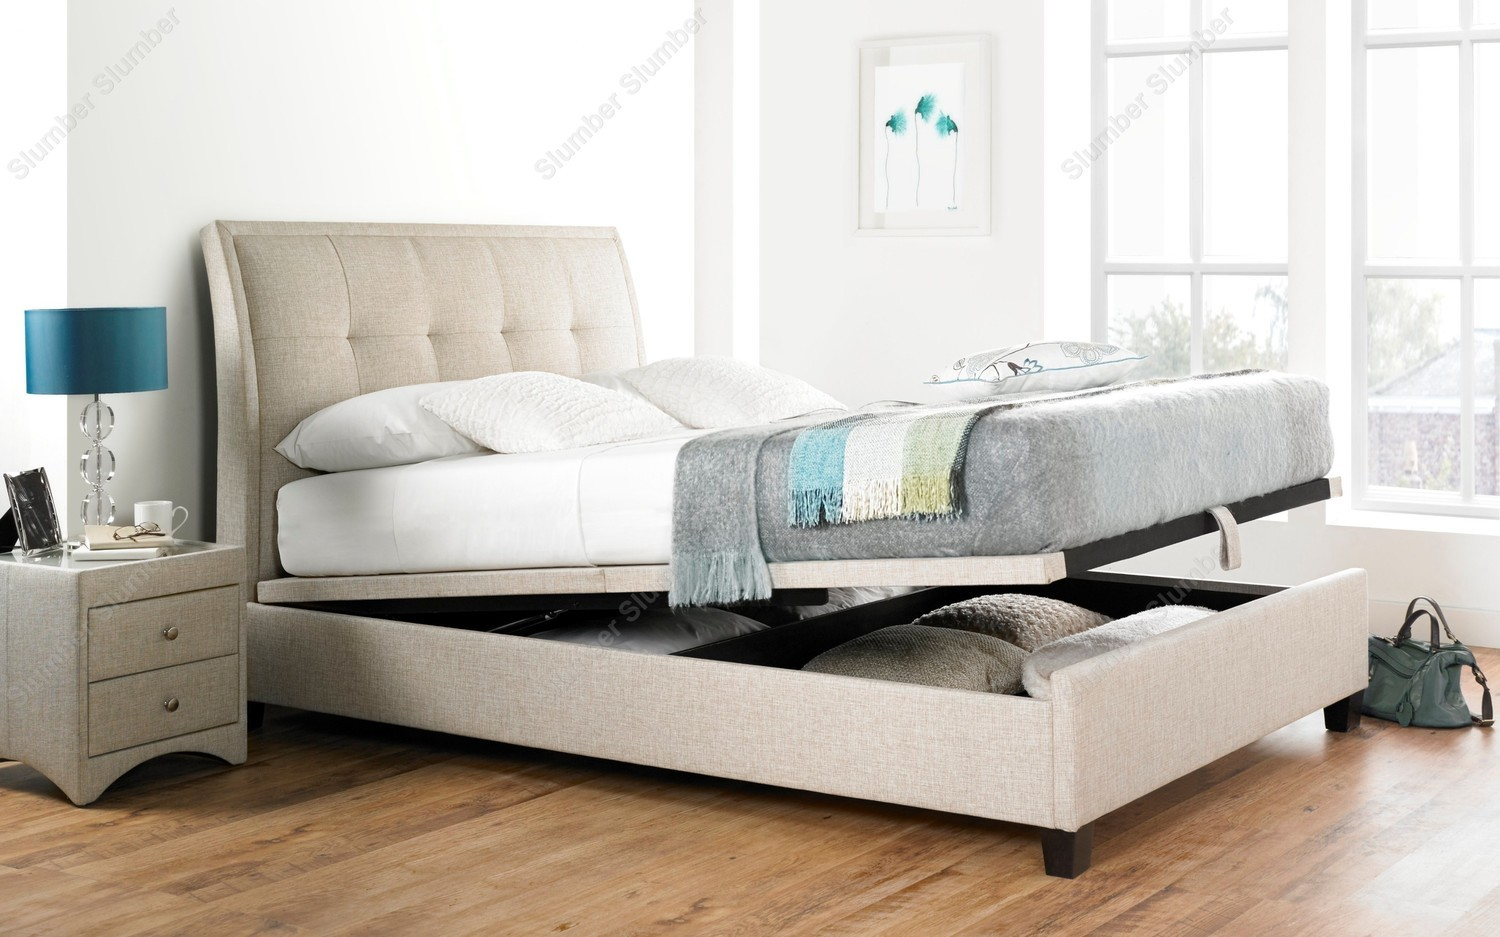 Accent Bed Kaydian Accent Ottoman Storage Bed Frame From